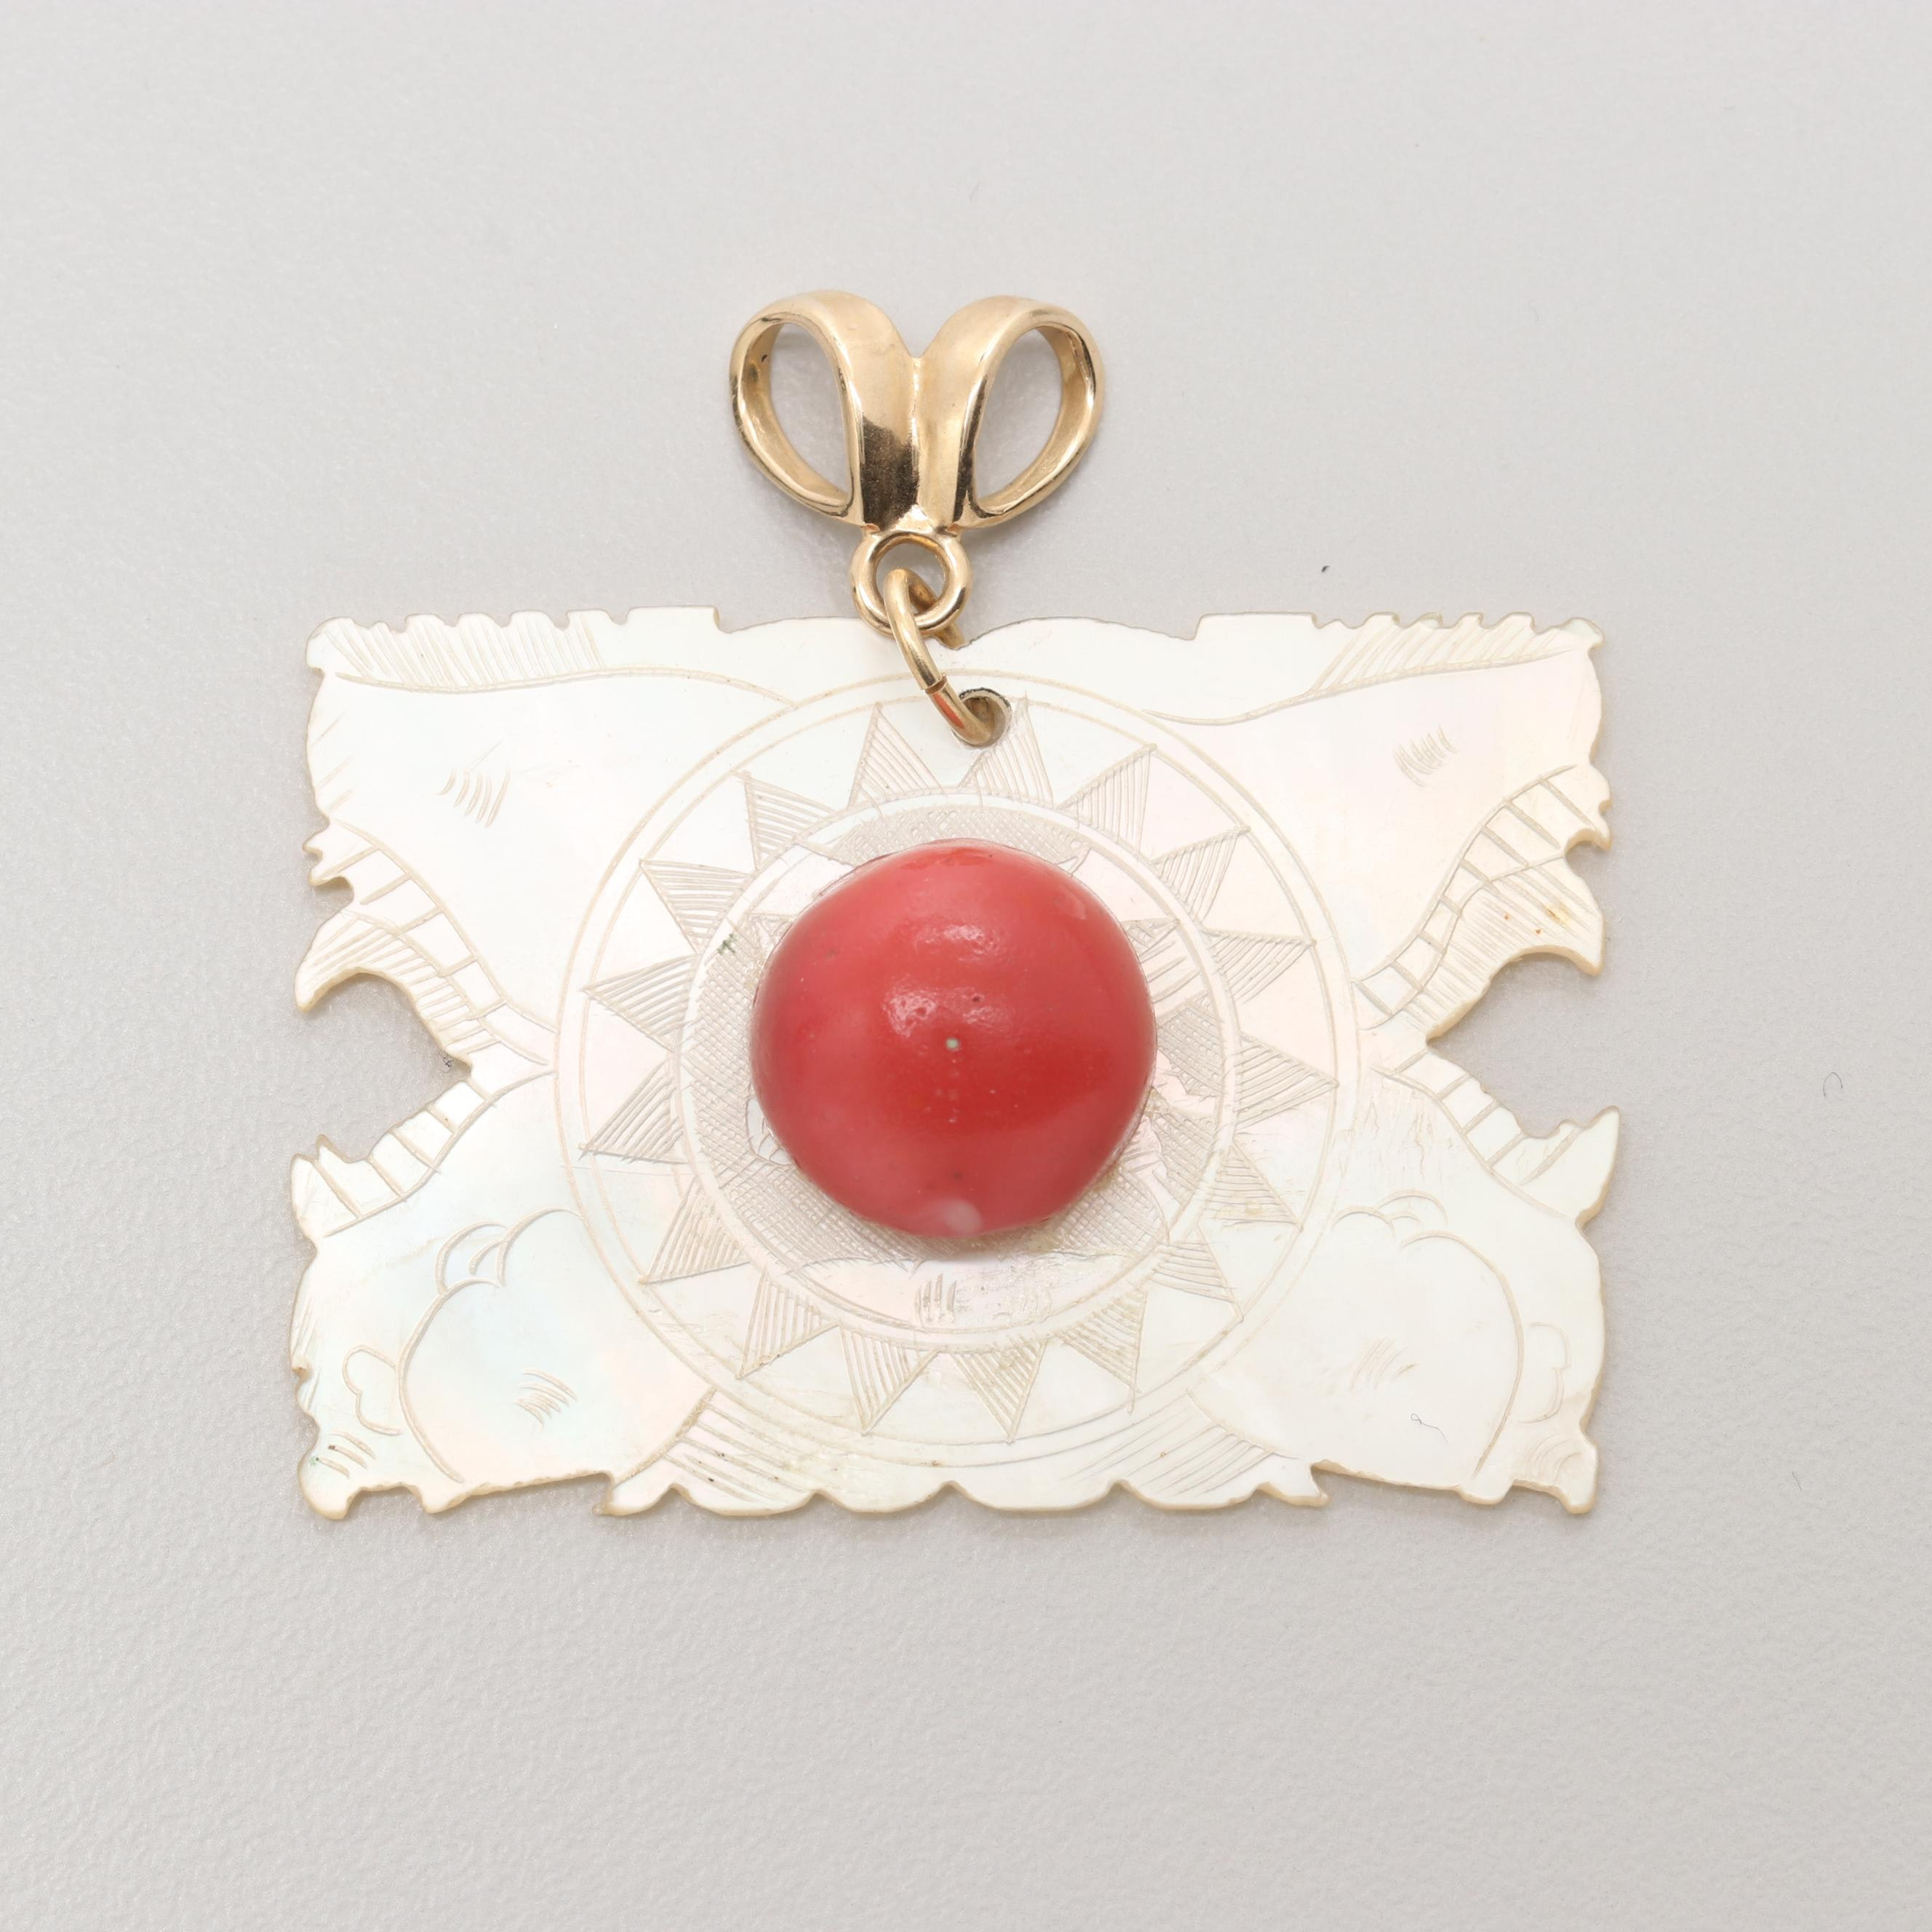 18K Yellow Gold Imitation Coral and Mother of Pearl Pendant